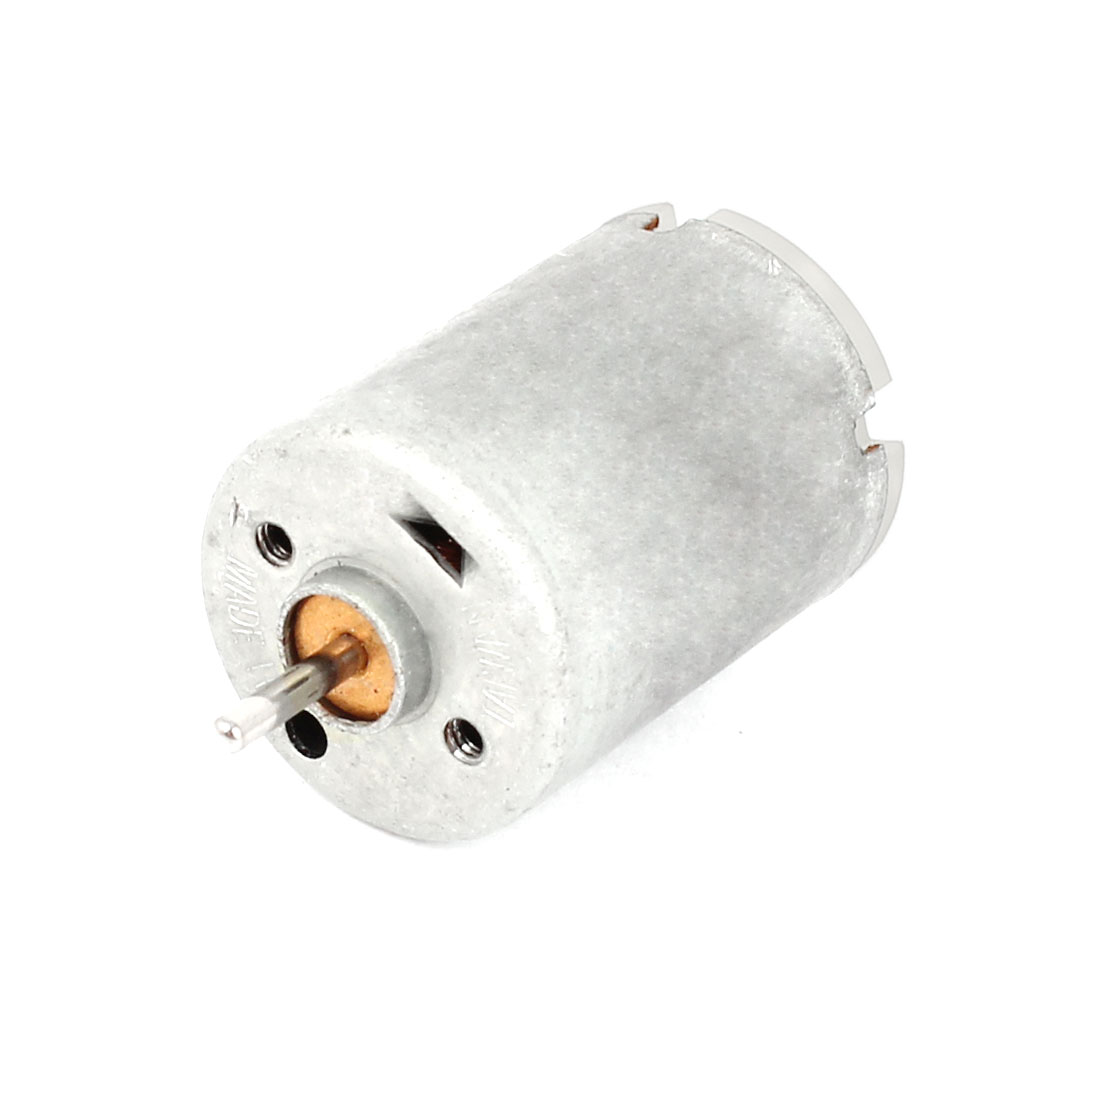 DC 3V-9V 2000RPM High Speed Low Voltage Electric Micro Motor